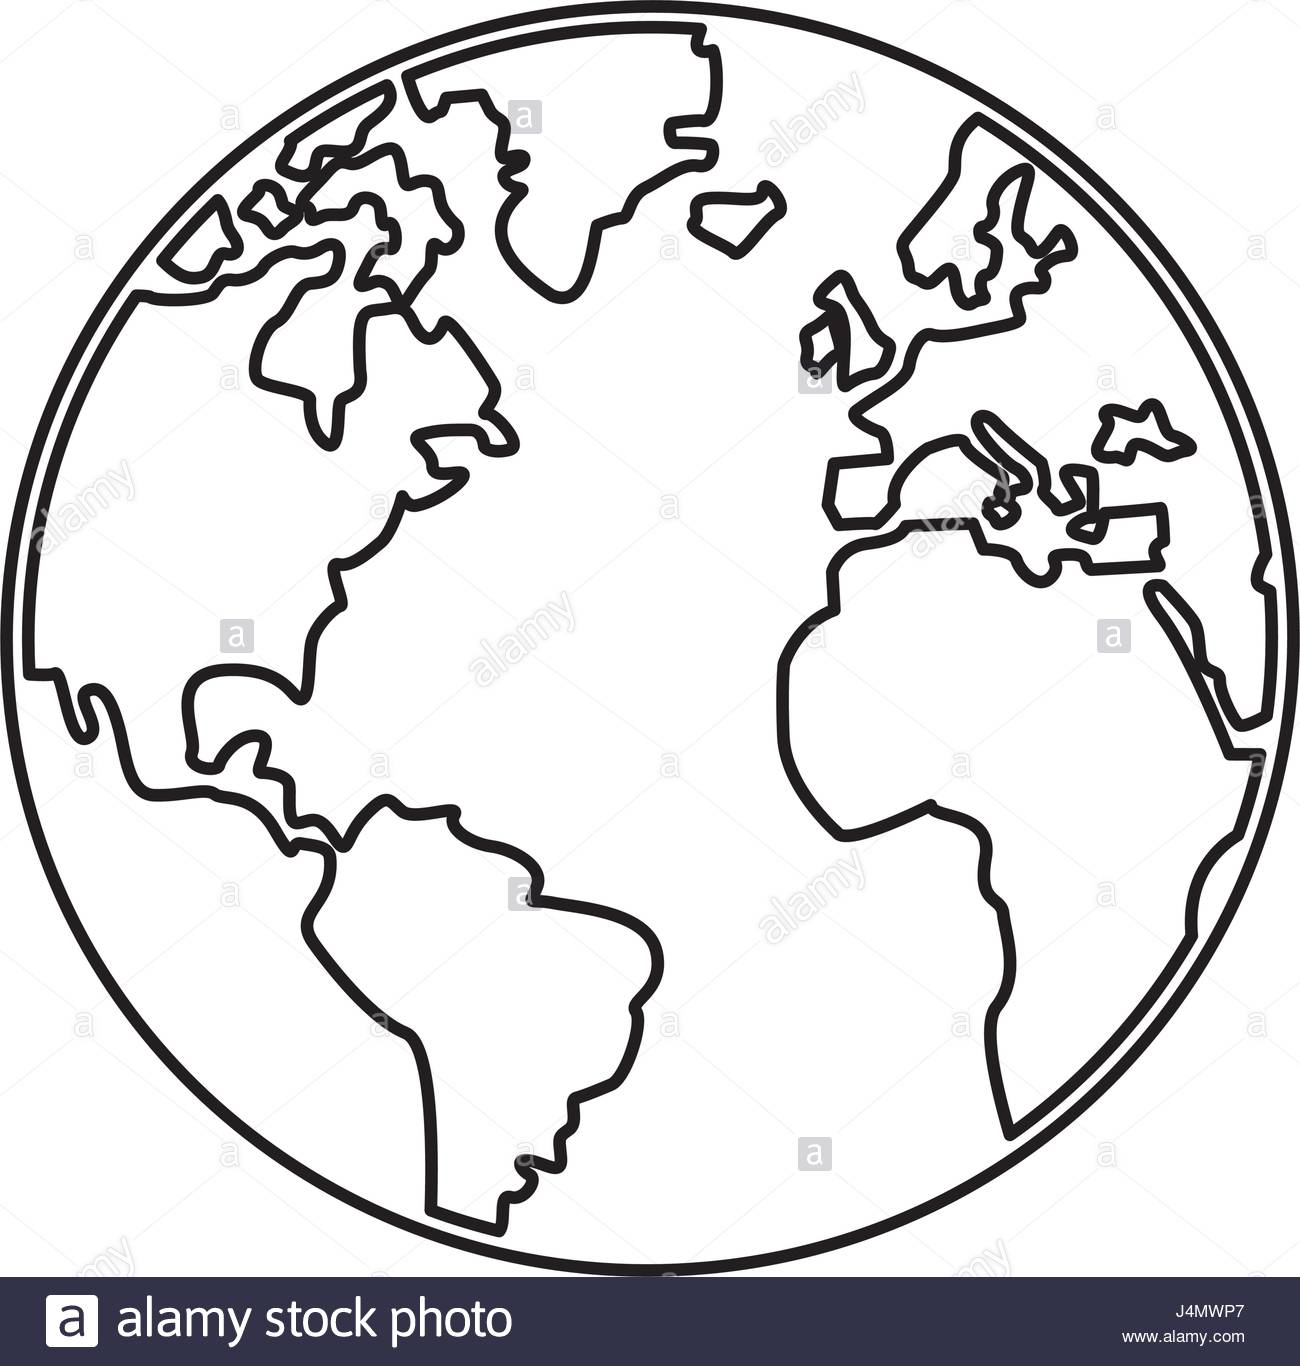 Globe outline free download best globe outline on clipartmag 1300x1366 world map earth globes cartography continents outline stock vector gumiabroncs Gallery